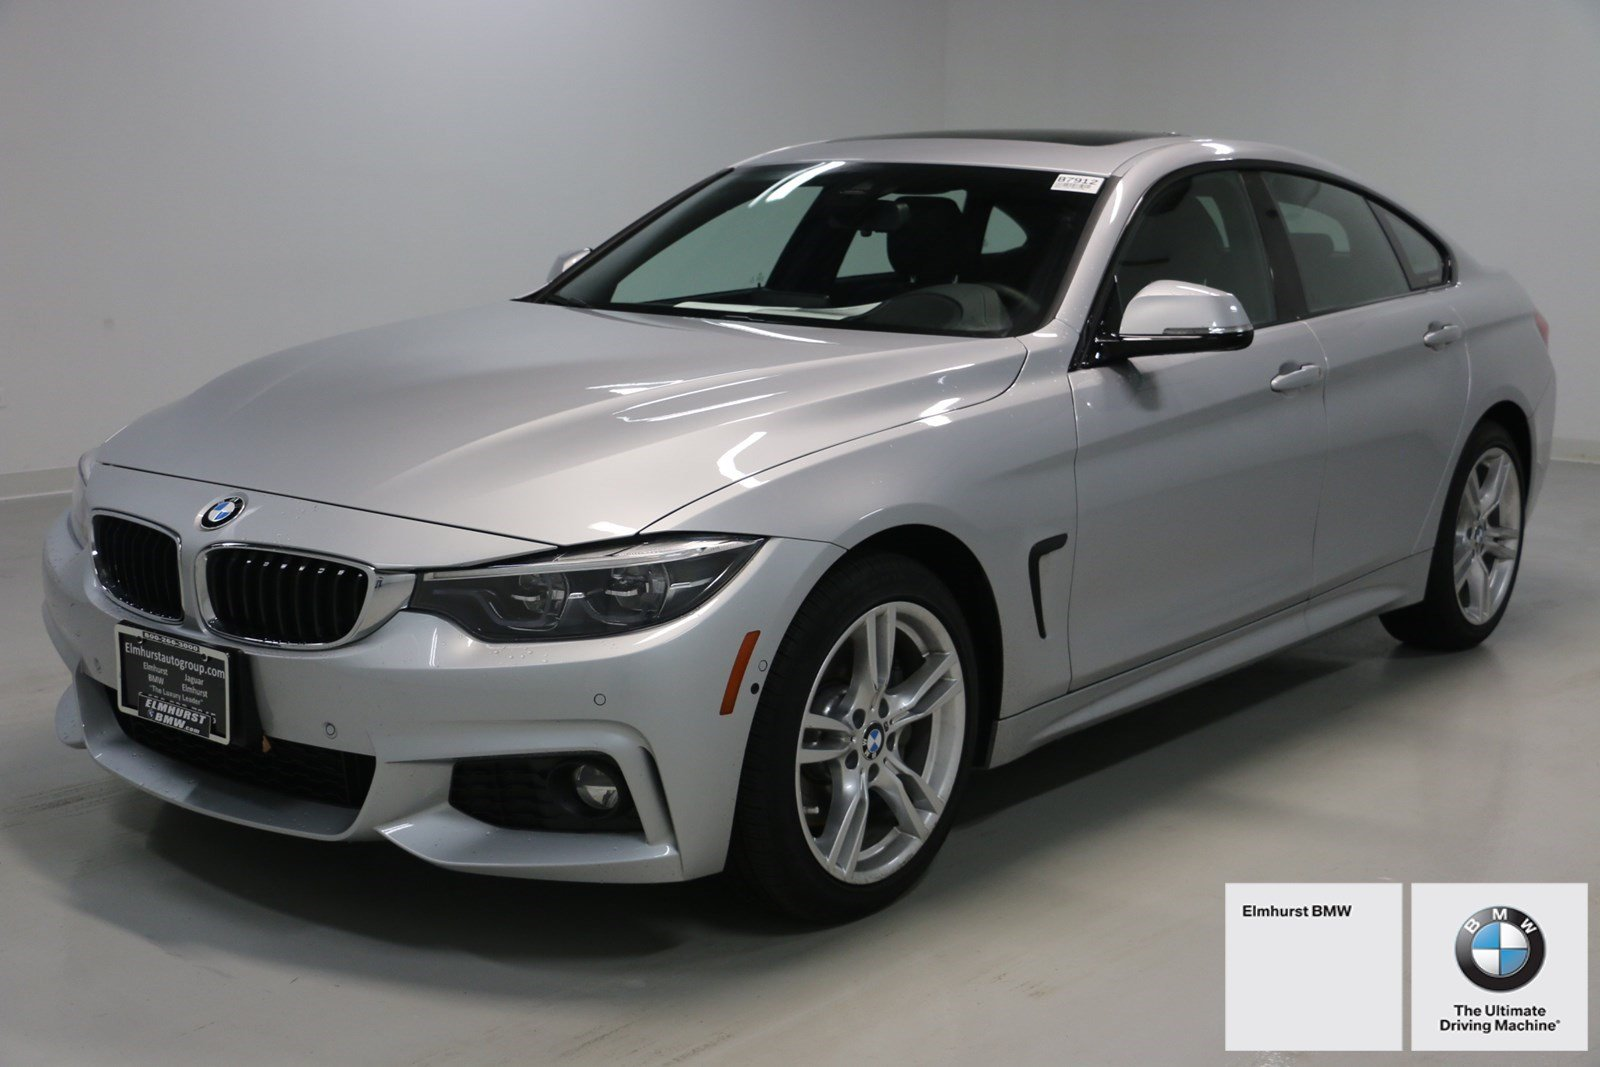 pre owned 2018 bmw 4 series 440i xdrive gran coupe hatchback in elmhurst b7912 elmhurst bmw. Black Bedroom Furniture Sets. Home Design Ideas